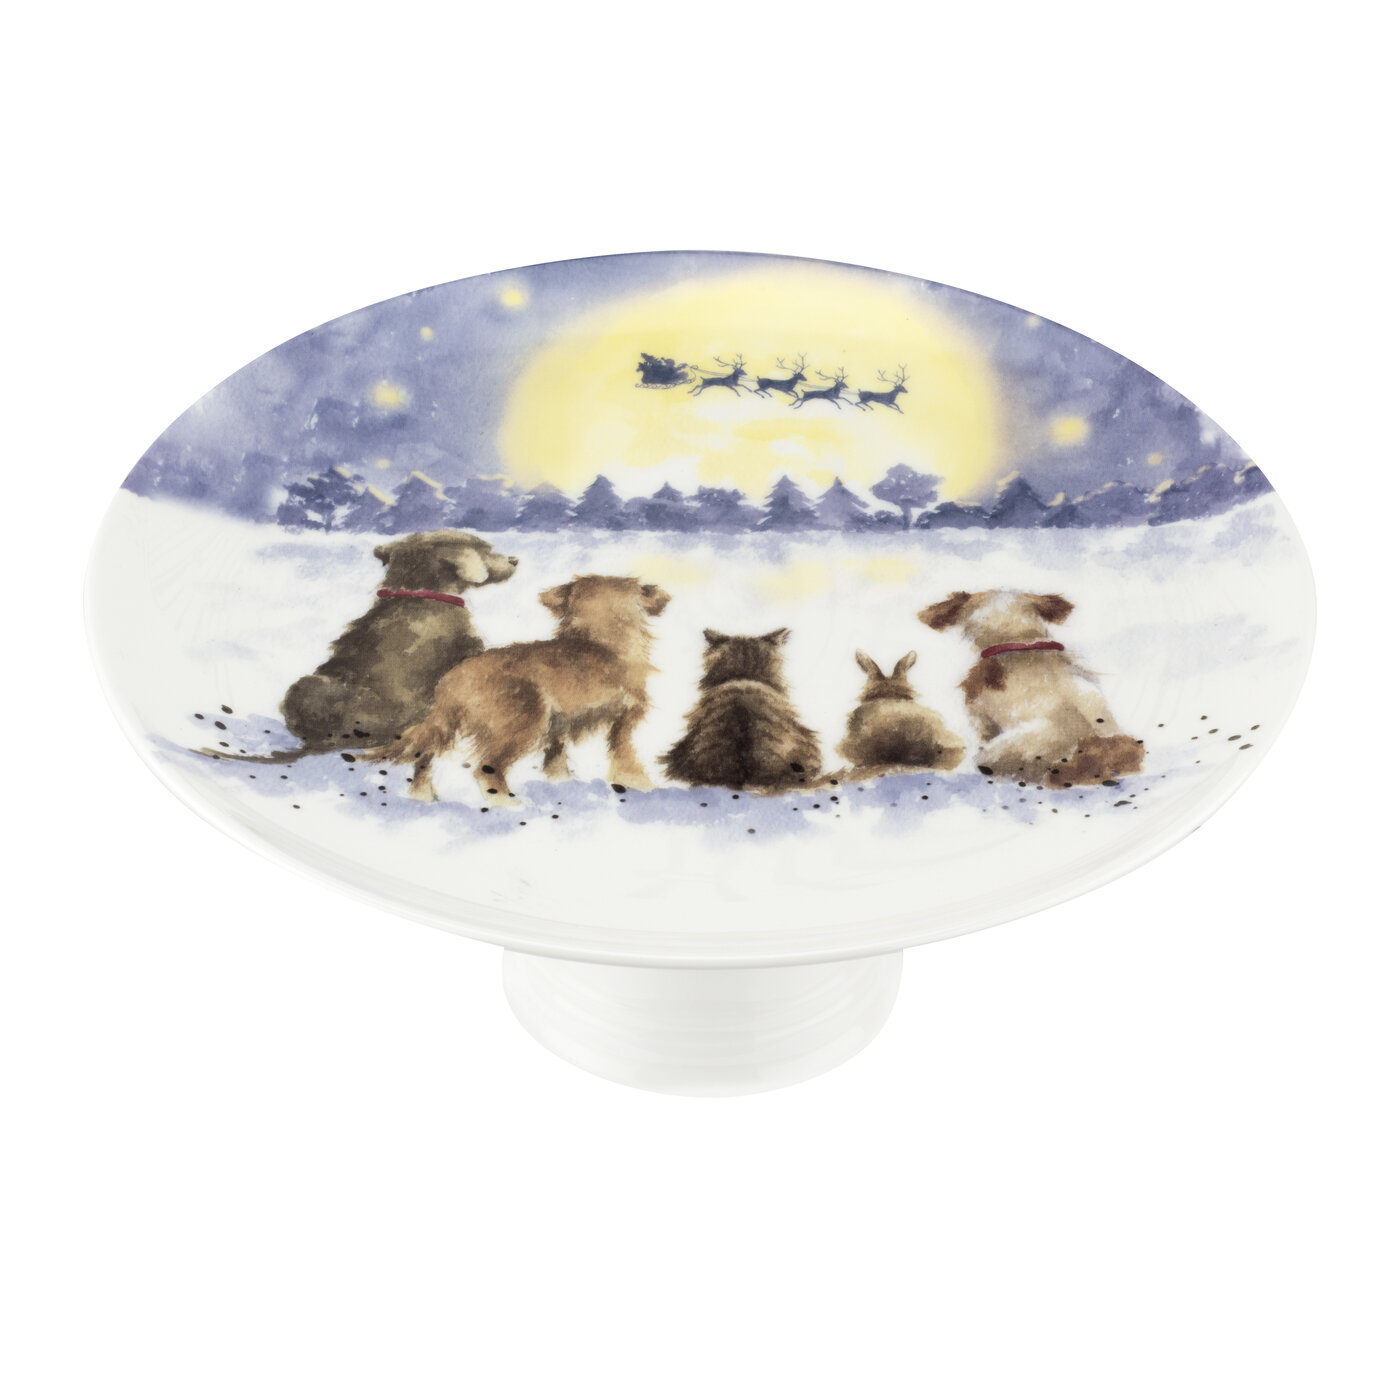 Royal Worcester Wrendale Designs 9.75 Inch Footed Cake Plate (The Magic of Christmas) image number 1